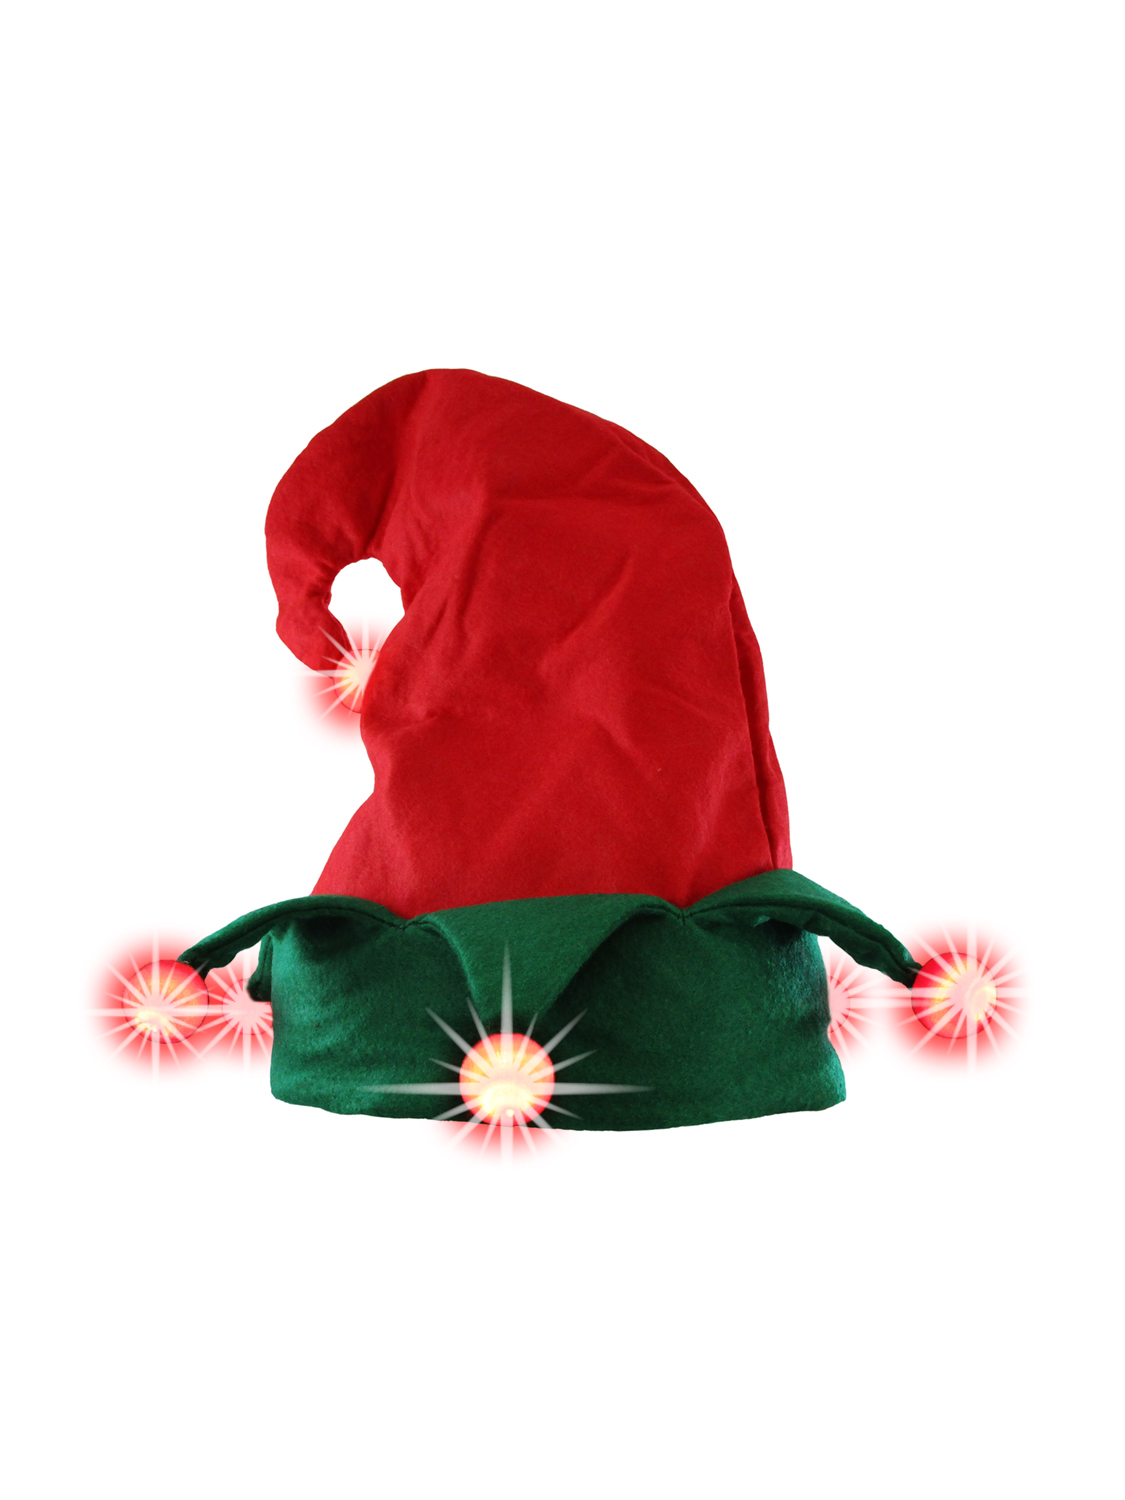 thumbnail 7 - Nicky-Bigs-Novelties-Light-Up-Elf-Hat-Costume-Accessory-Red-Green-One-Size